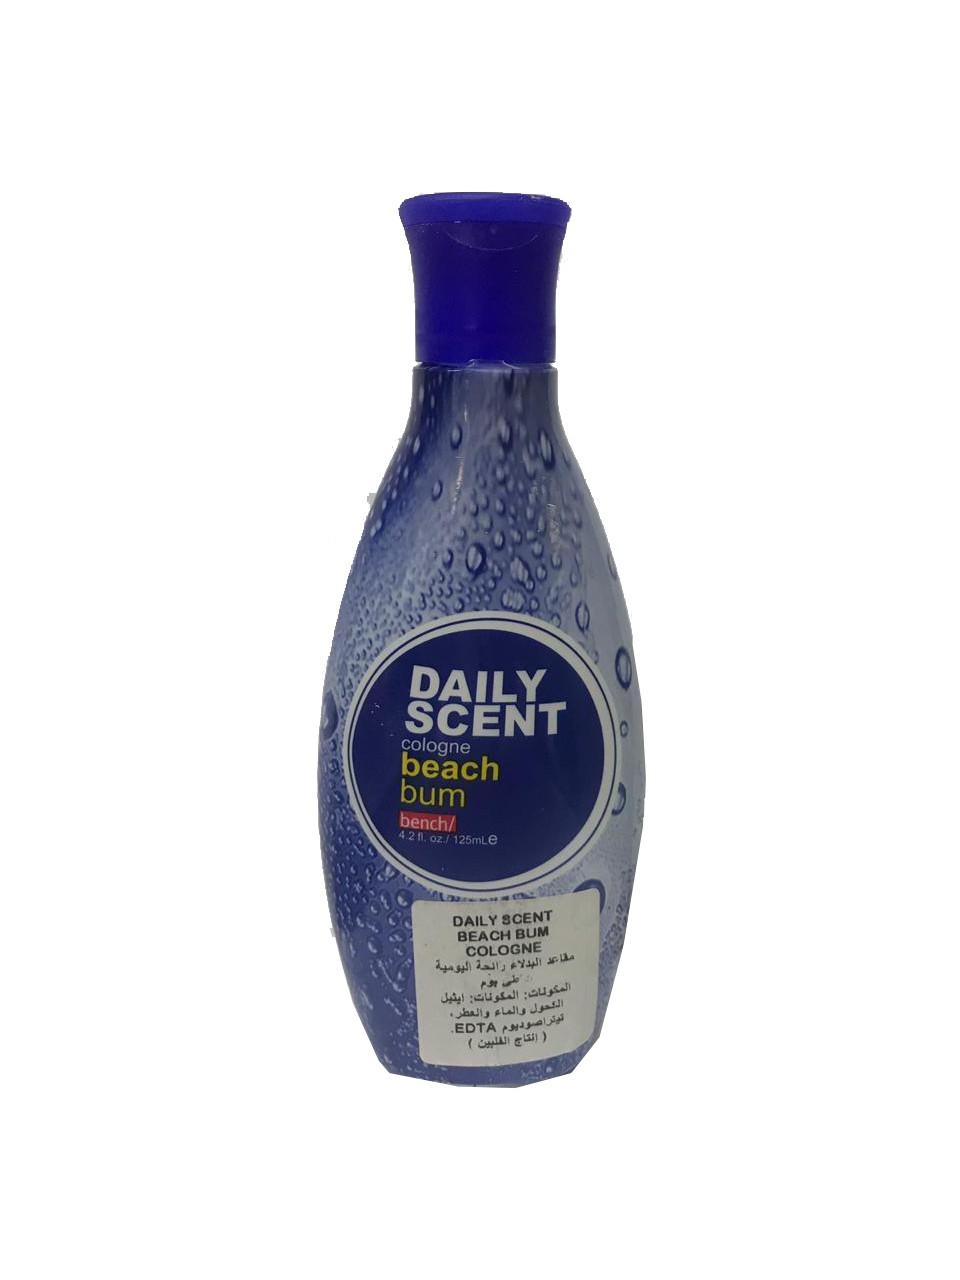 Bench Daily Scent Cologne Beach Bum  125ml